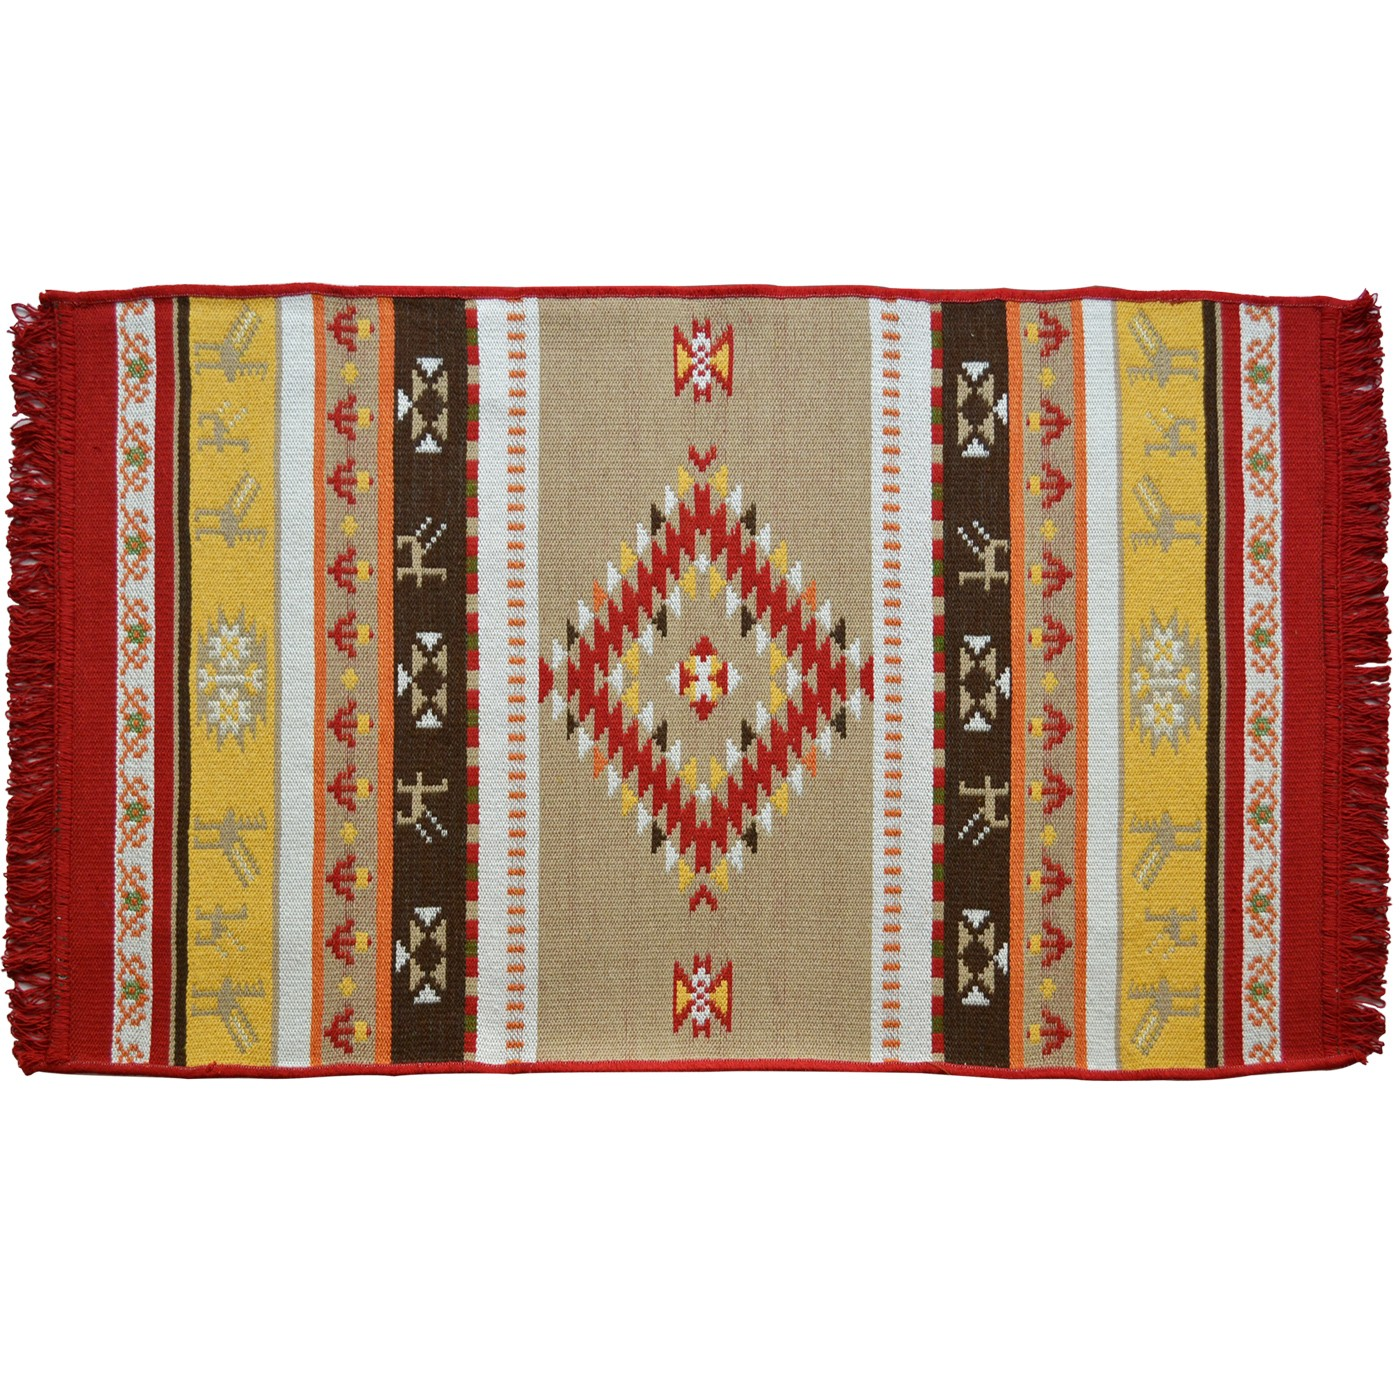 Omfalos_Ethnic_Summer_Carpet_Bright_Red-1